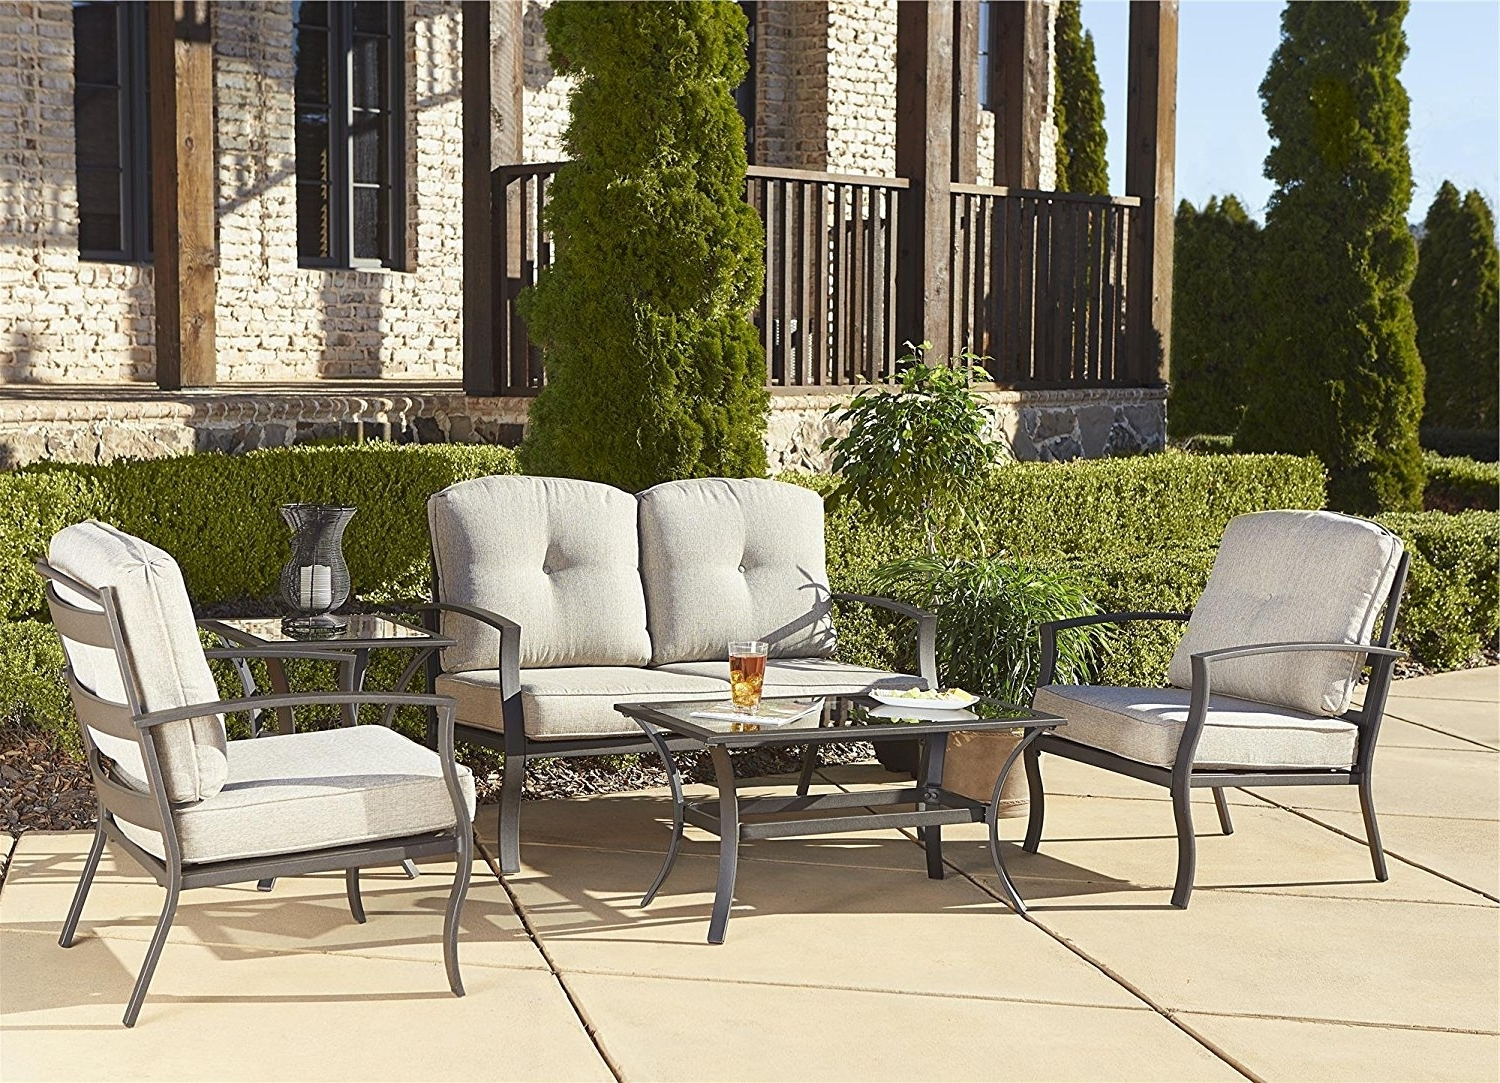 Big Lots Patio Furniture Target Patio Furniture Gas Fire Pit Chat Throughout Most Popular Patio Conversation Sets At Target (View 11 of 20)